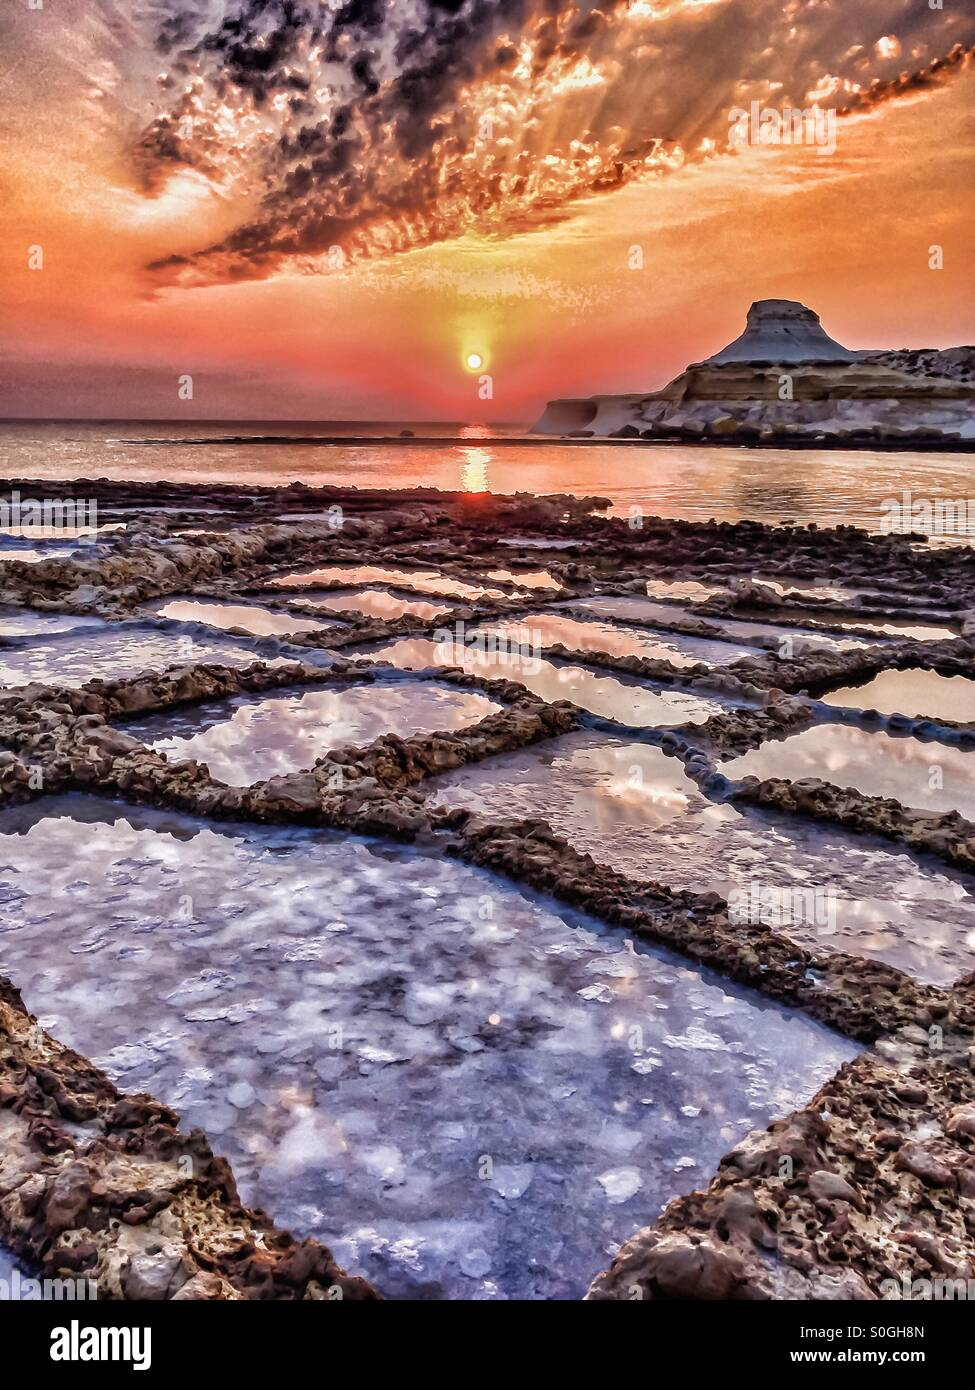 Dramatic dawn over calm bay and salt pans - Stock Image